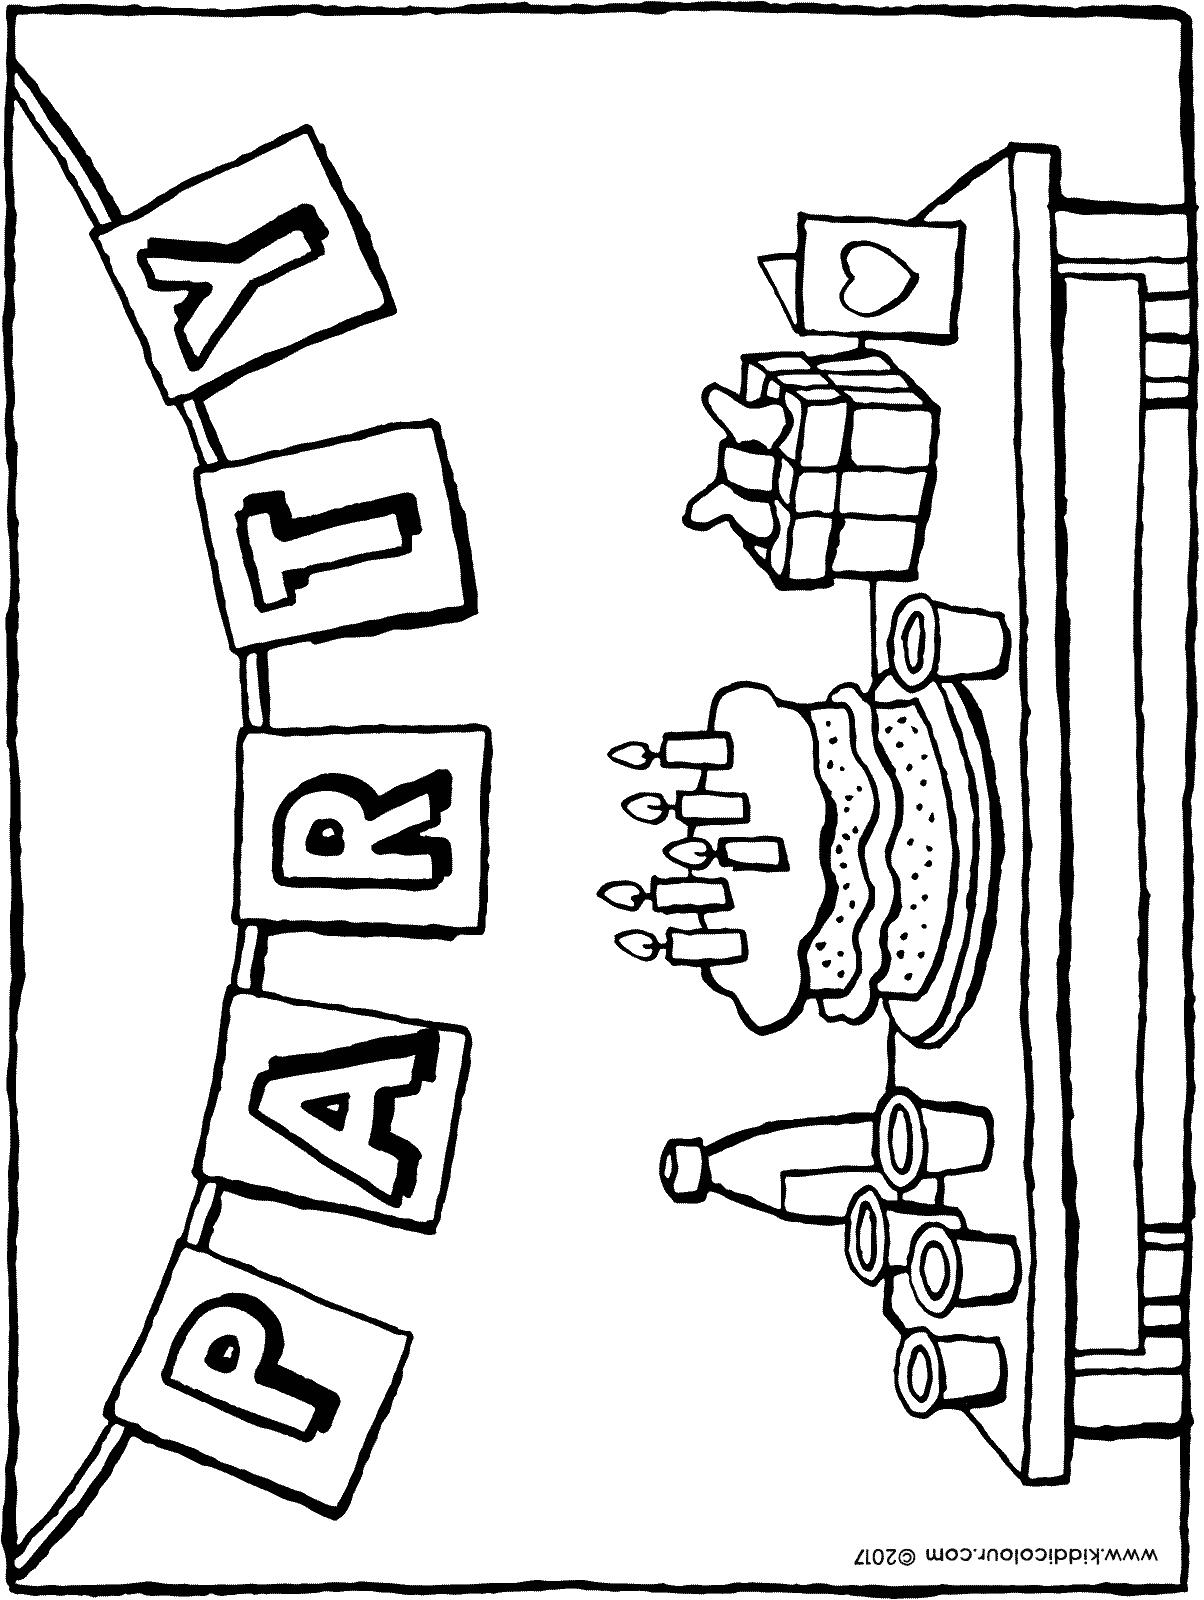 my birthday party drawing ; are-you-coming-to-my-birthday-party-colouring-page-01H